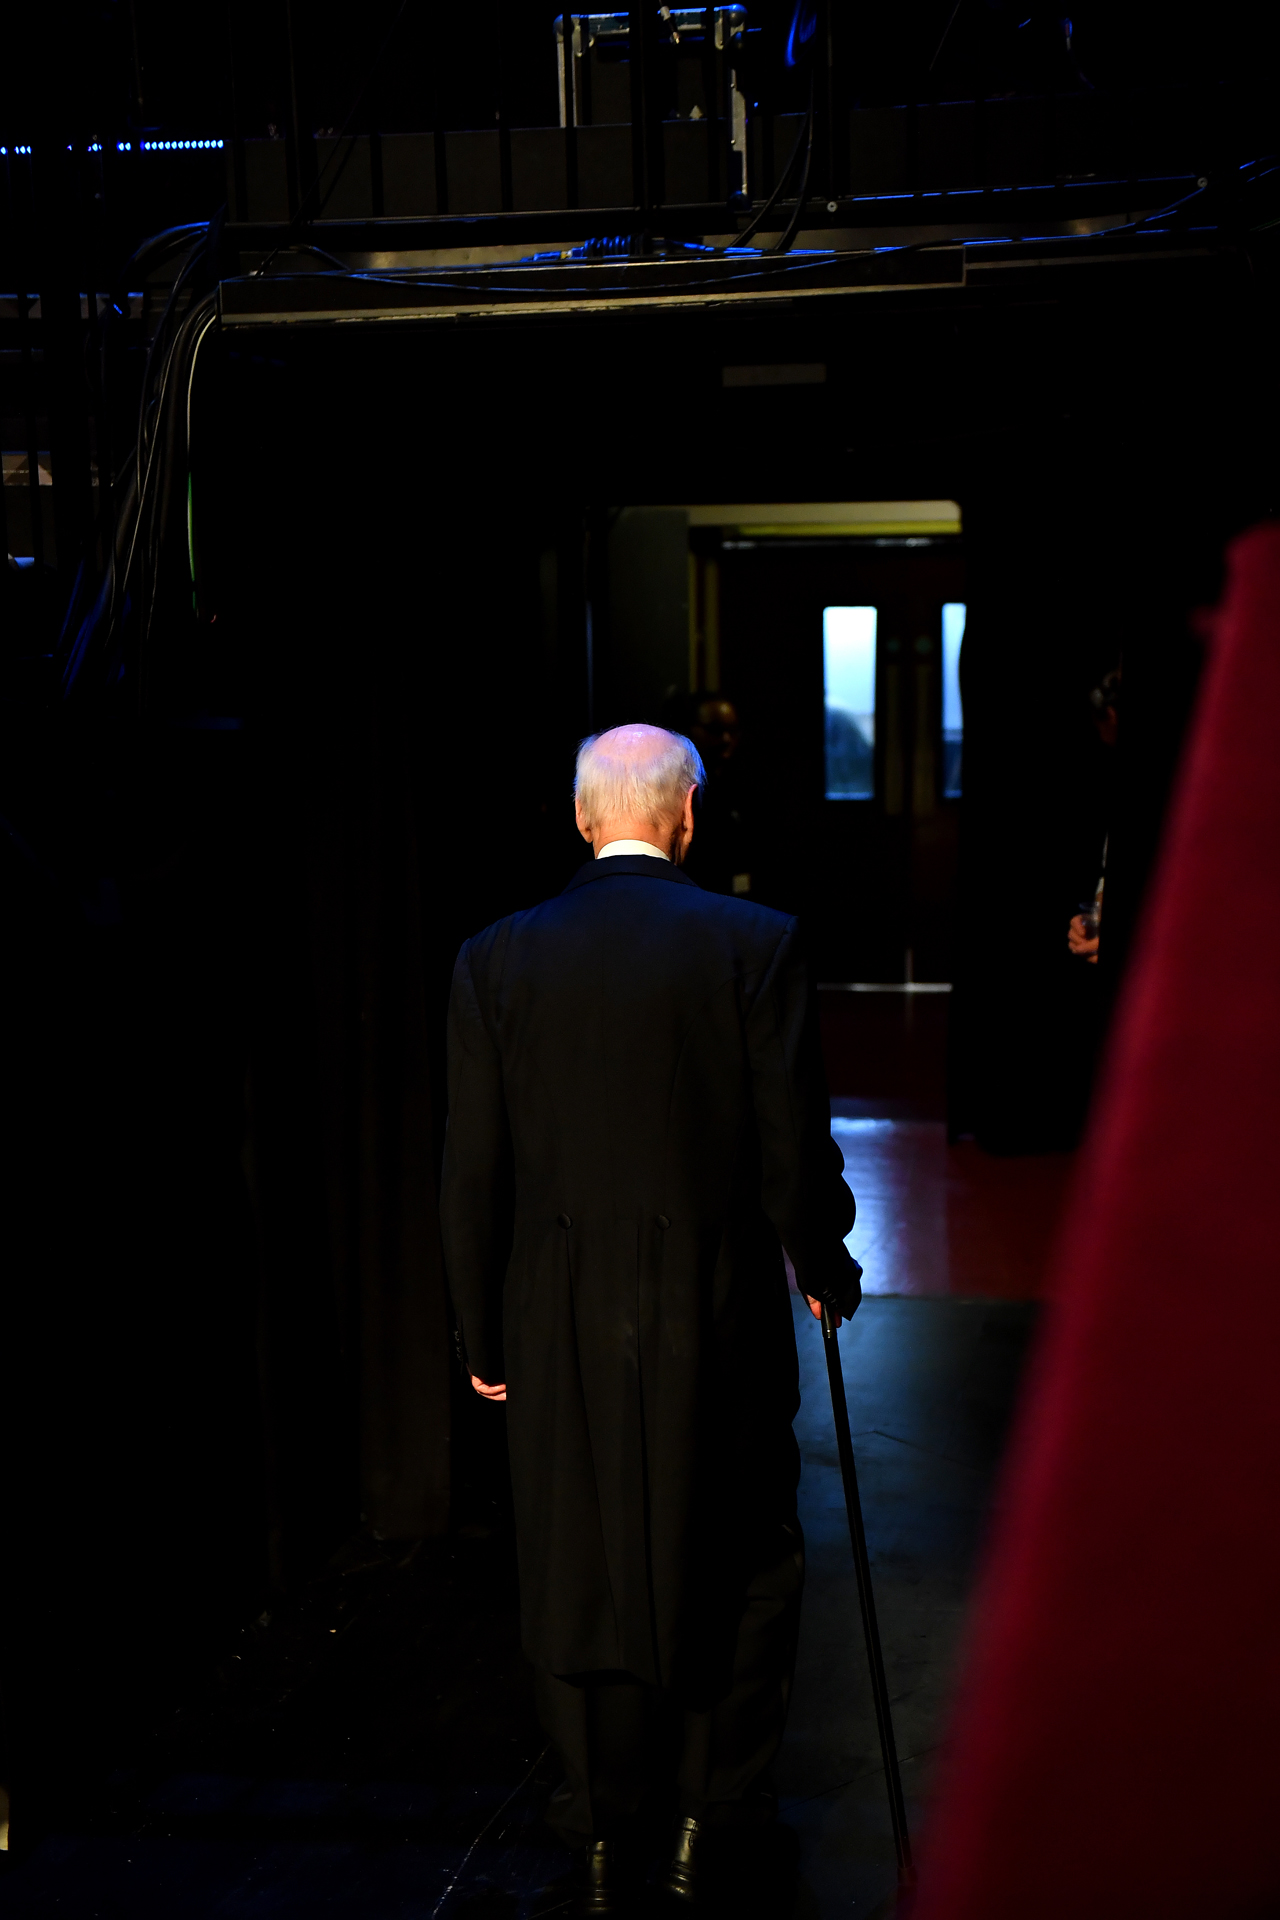 Haitink leaving the Proms platform